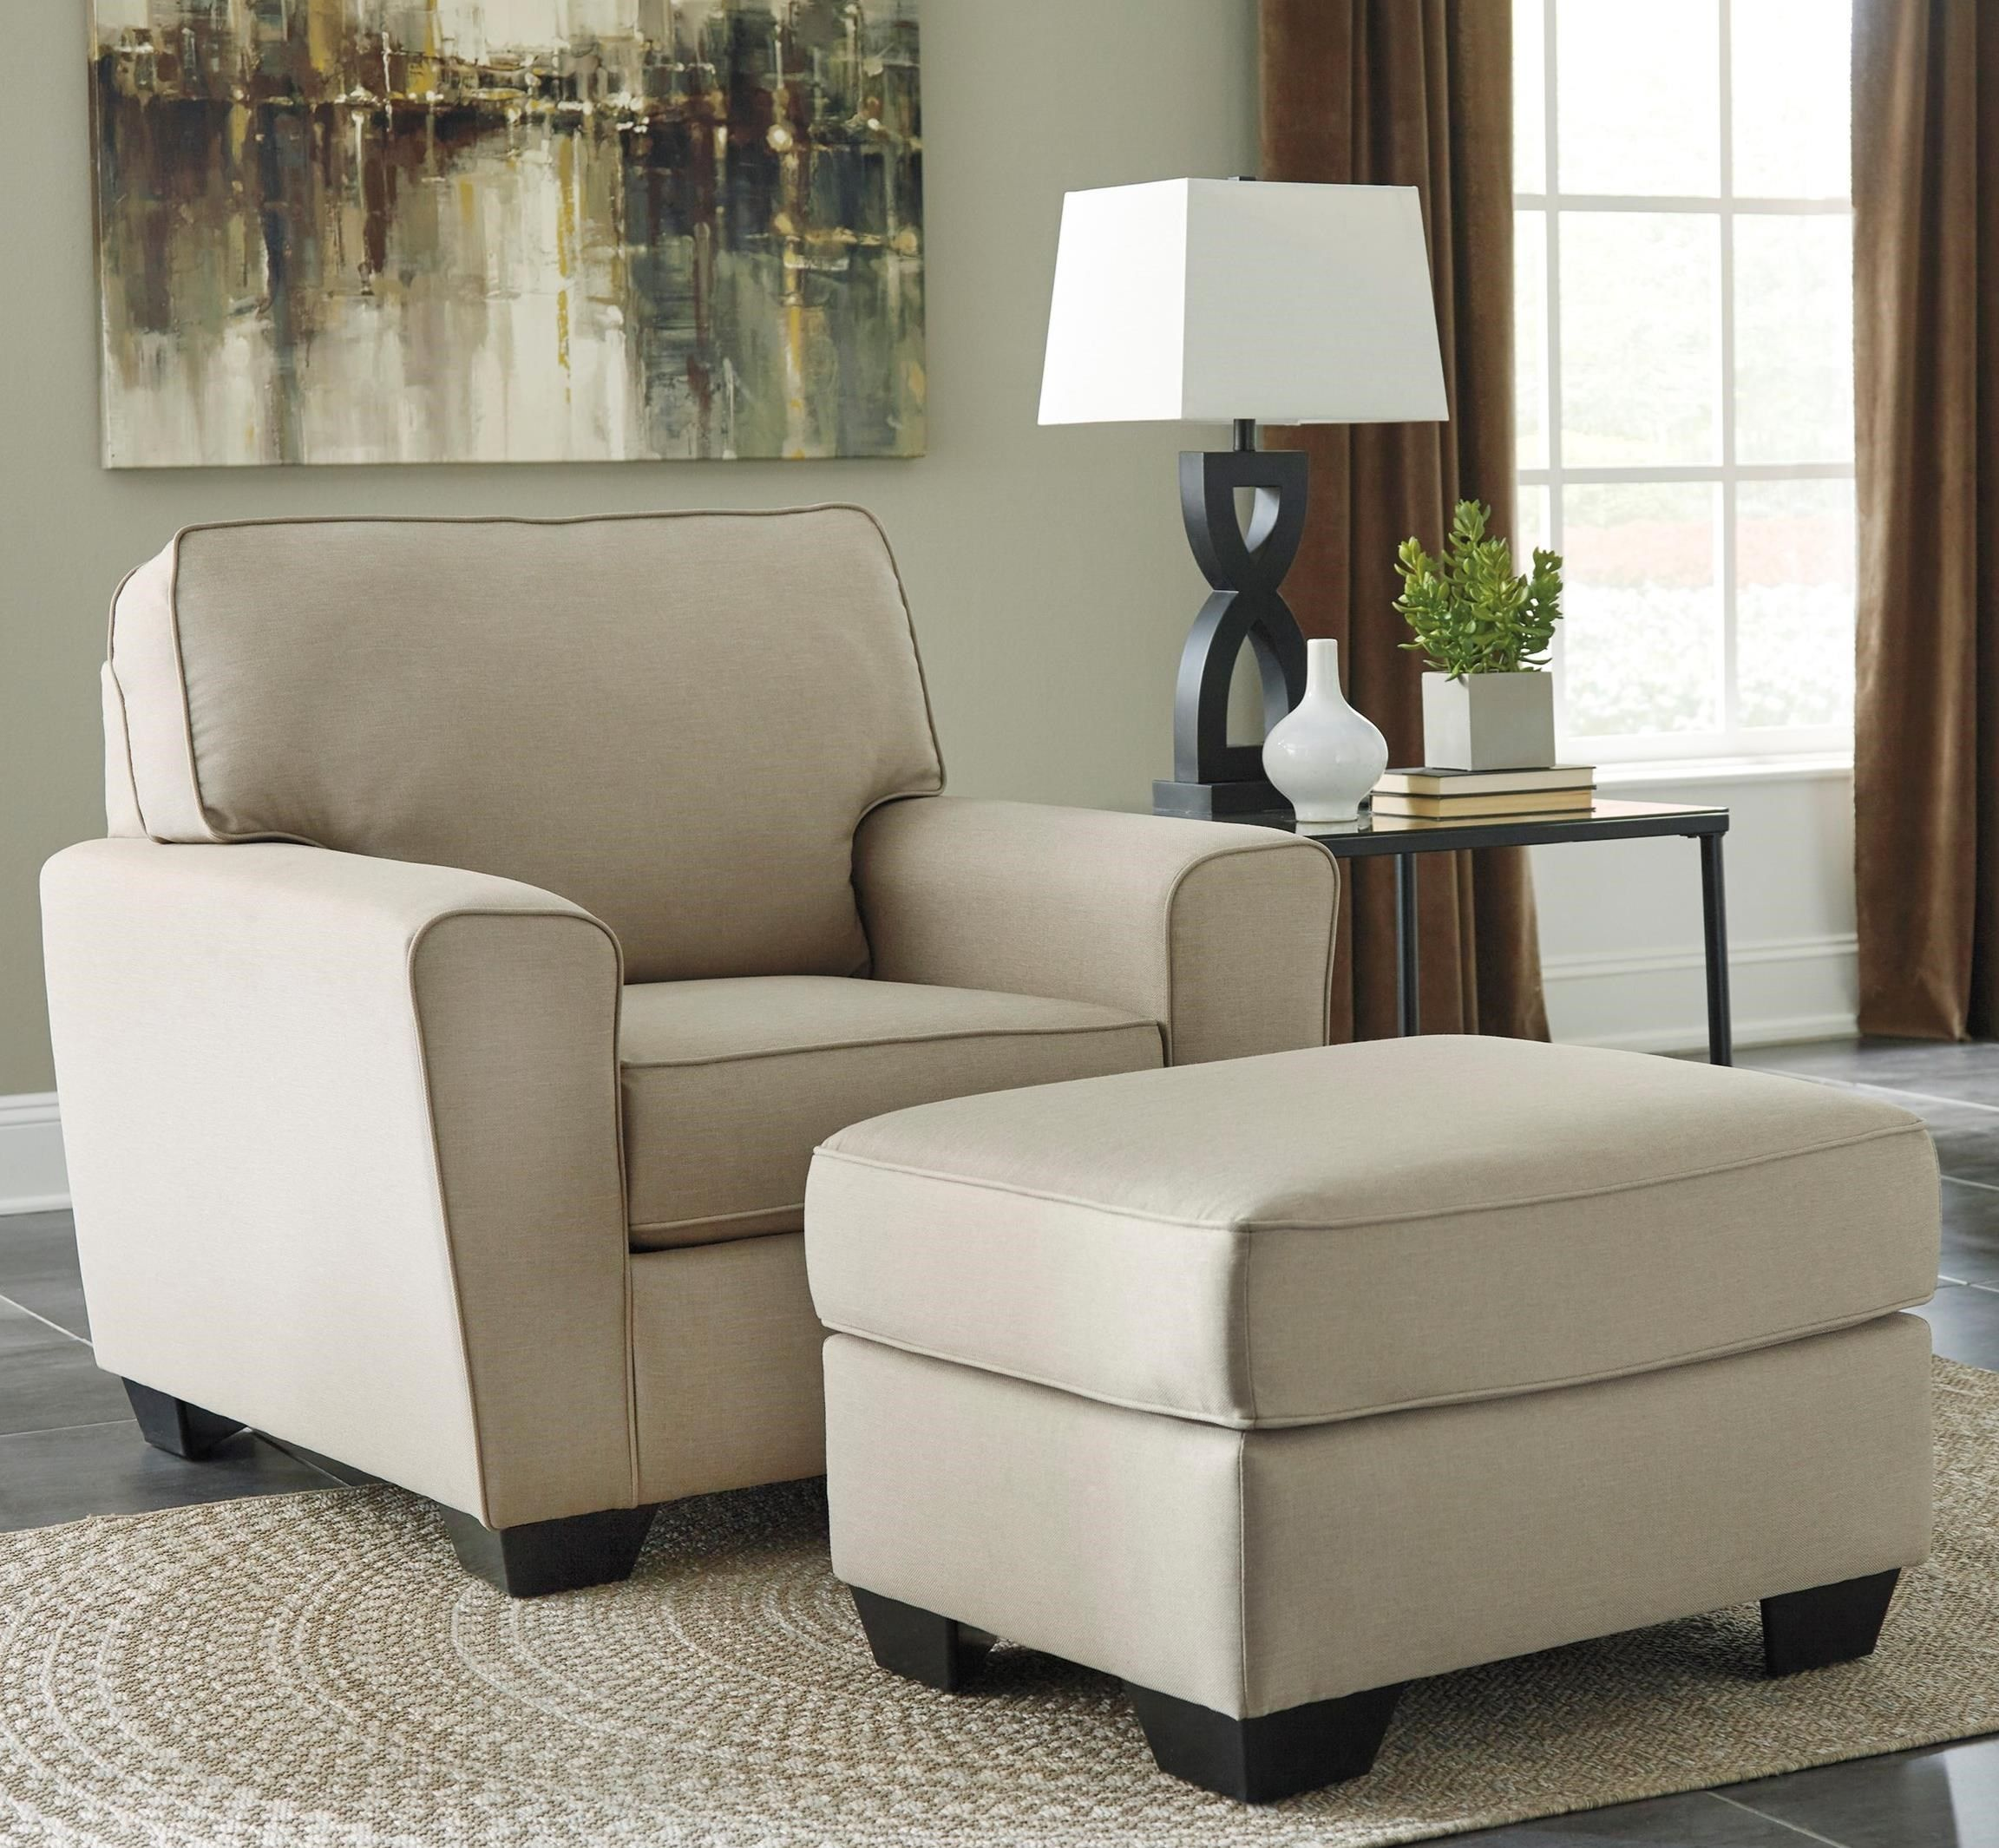 funiture snow accent with luxury for upholstery livings and living chair ottoman curved room chairs leather ottomans